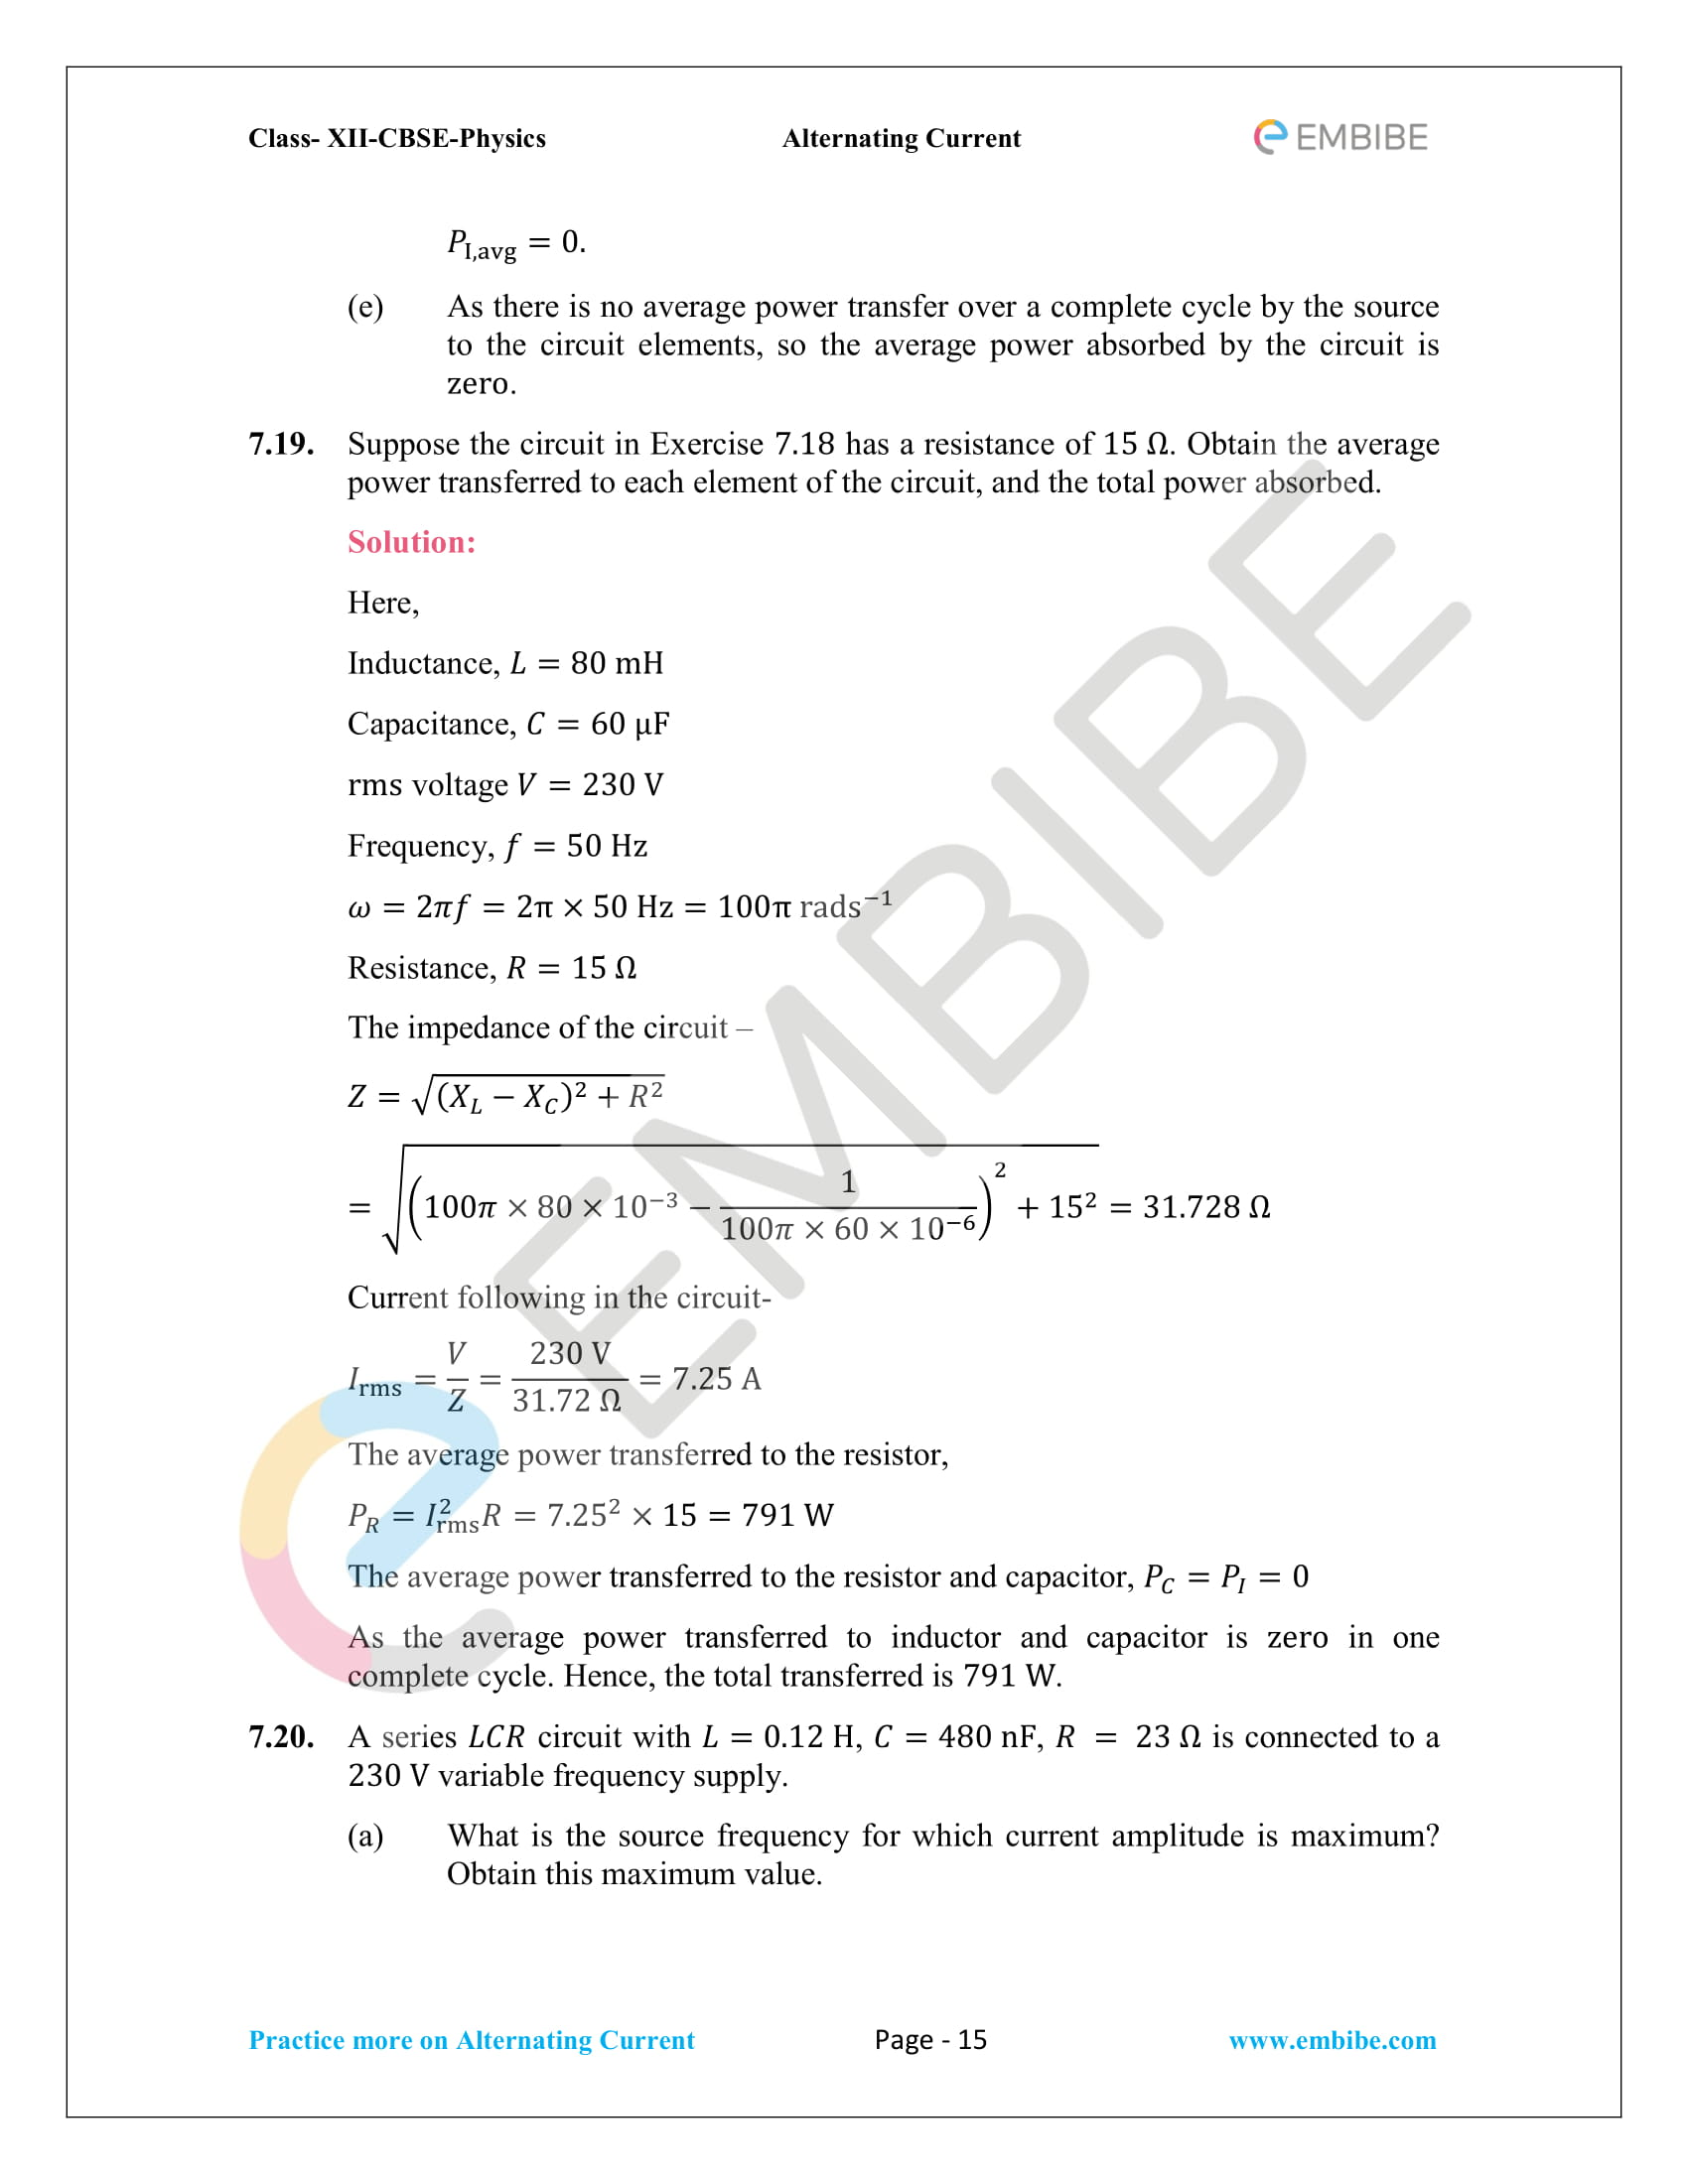 NCERT Solutions for Class 12 Chapter 7 Alternating Current-15